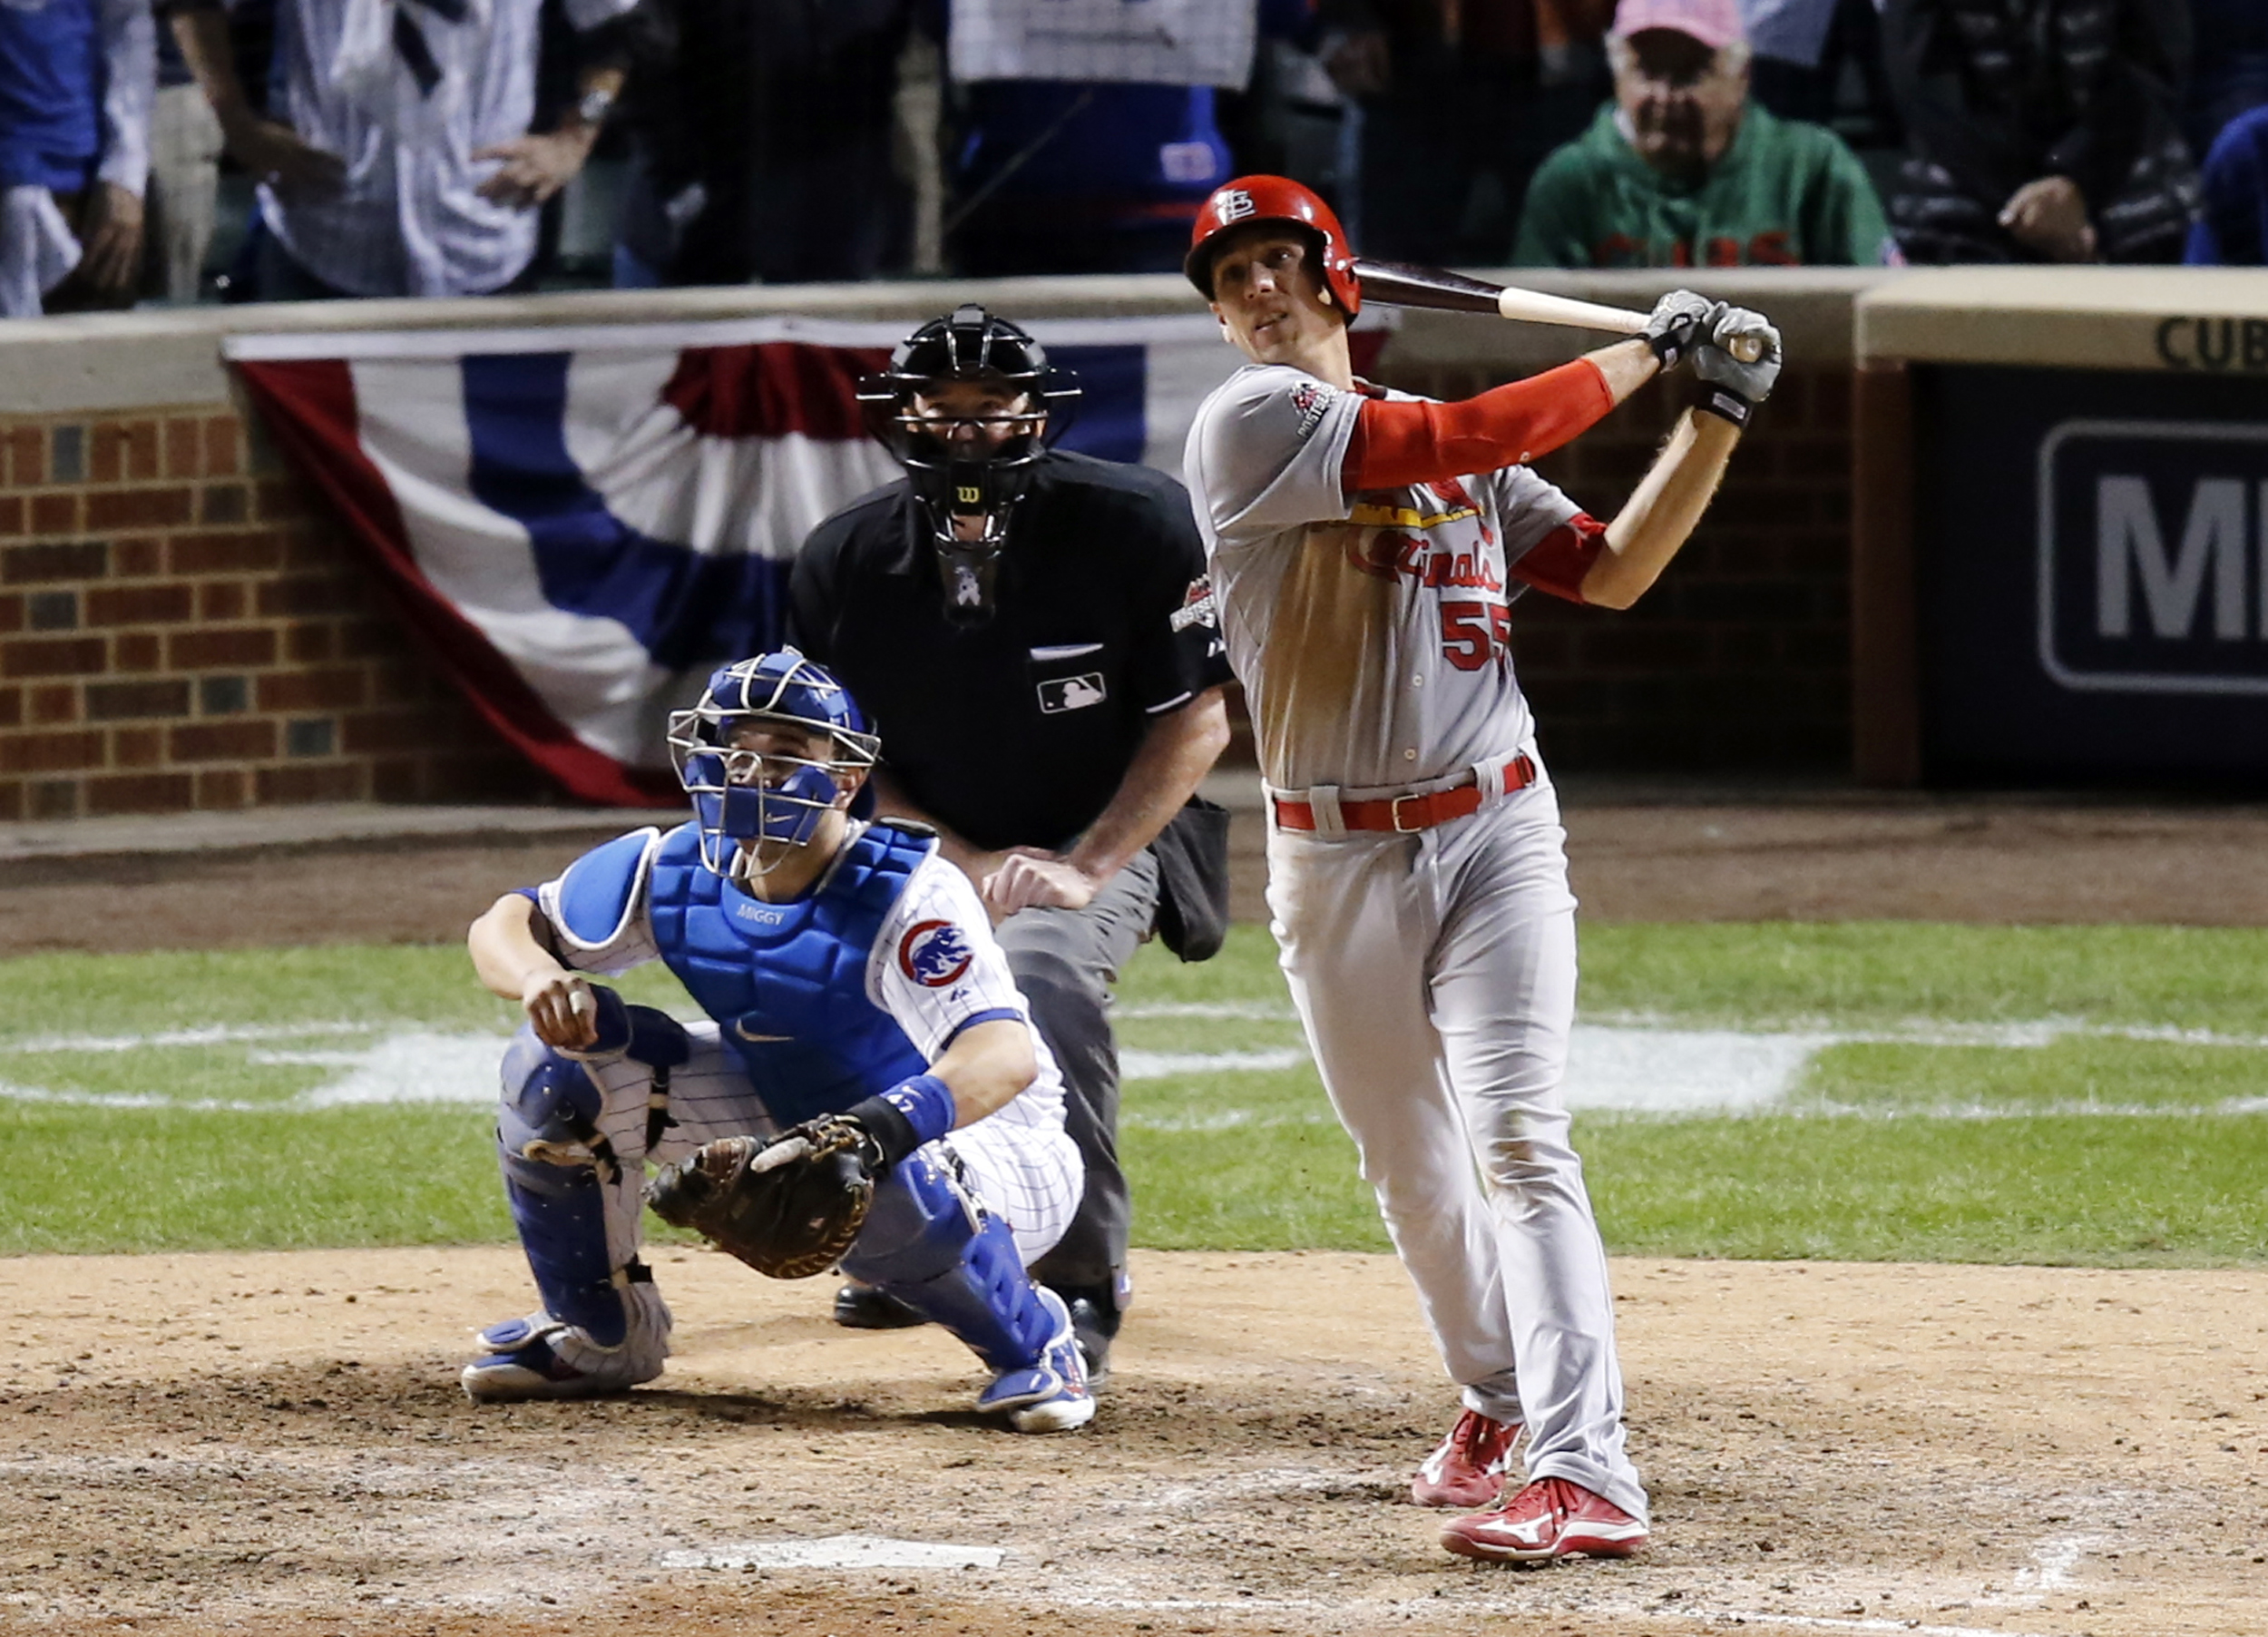 St. Louis Cardinals' Stephen Piscotty (55) hits a home run against the Chicago Cubs during the ninth inning of Game 3 in baseball's National League Division Series, Monday, Oct. 12, 2015, in Chicago. The Cubs won 8-6. (AP Photo/Charles Rex Arbogast)